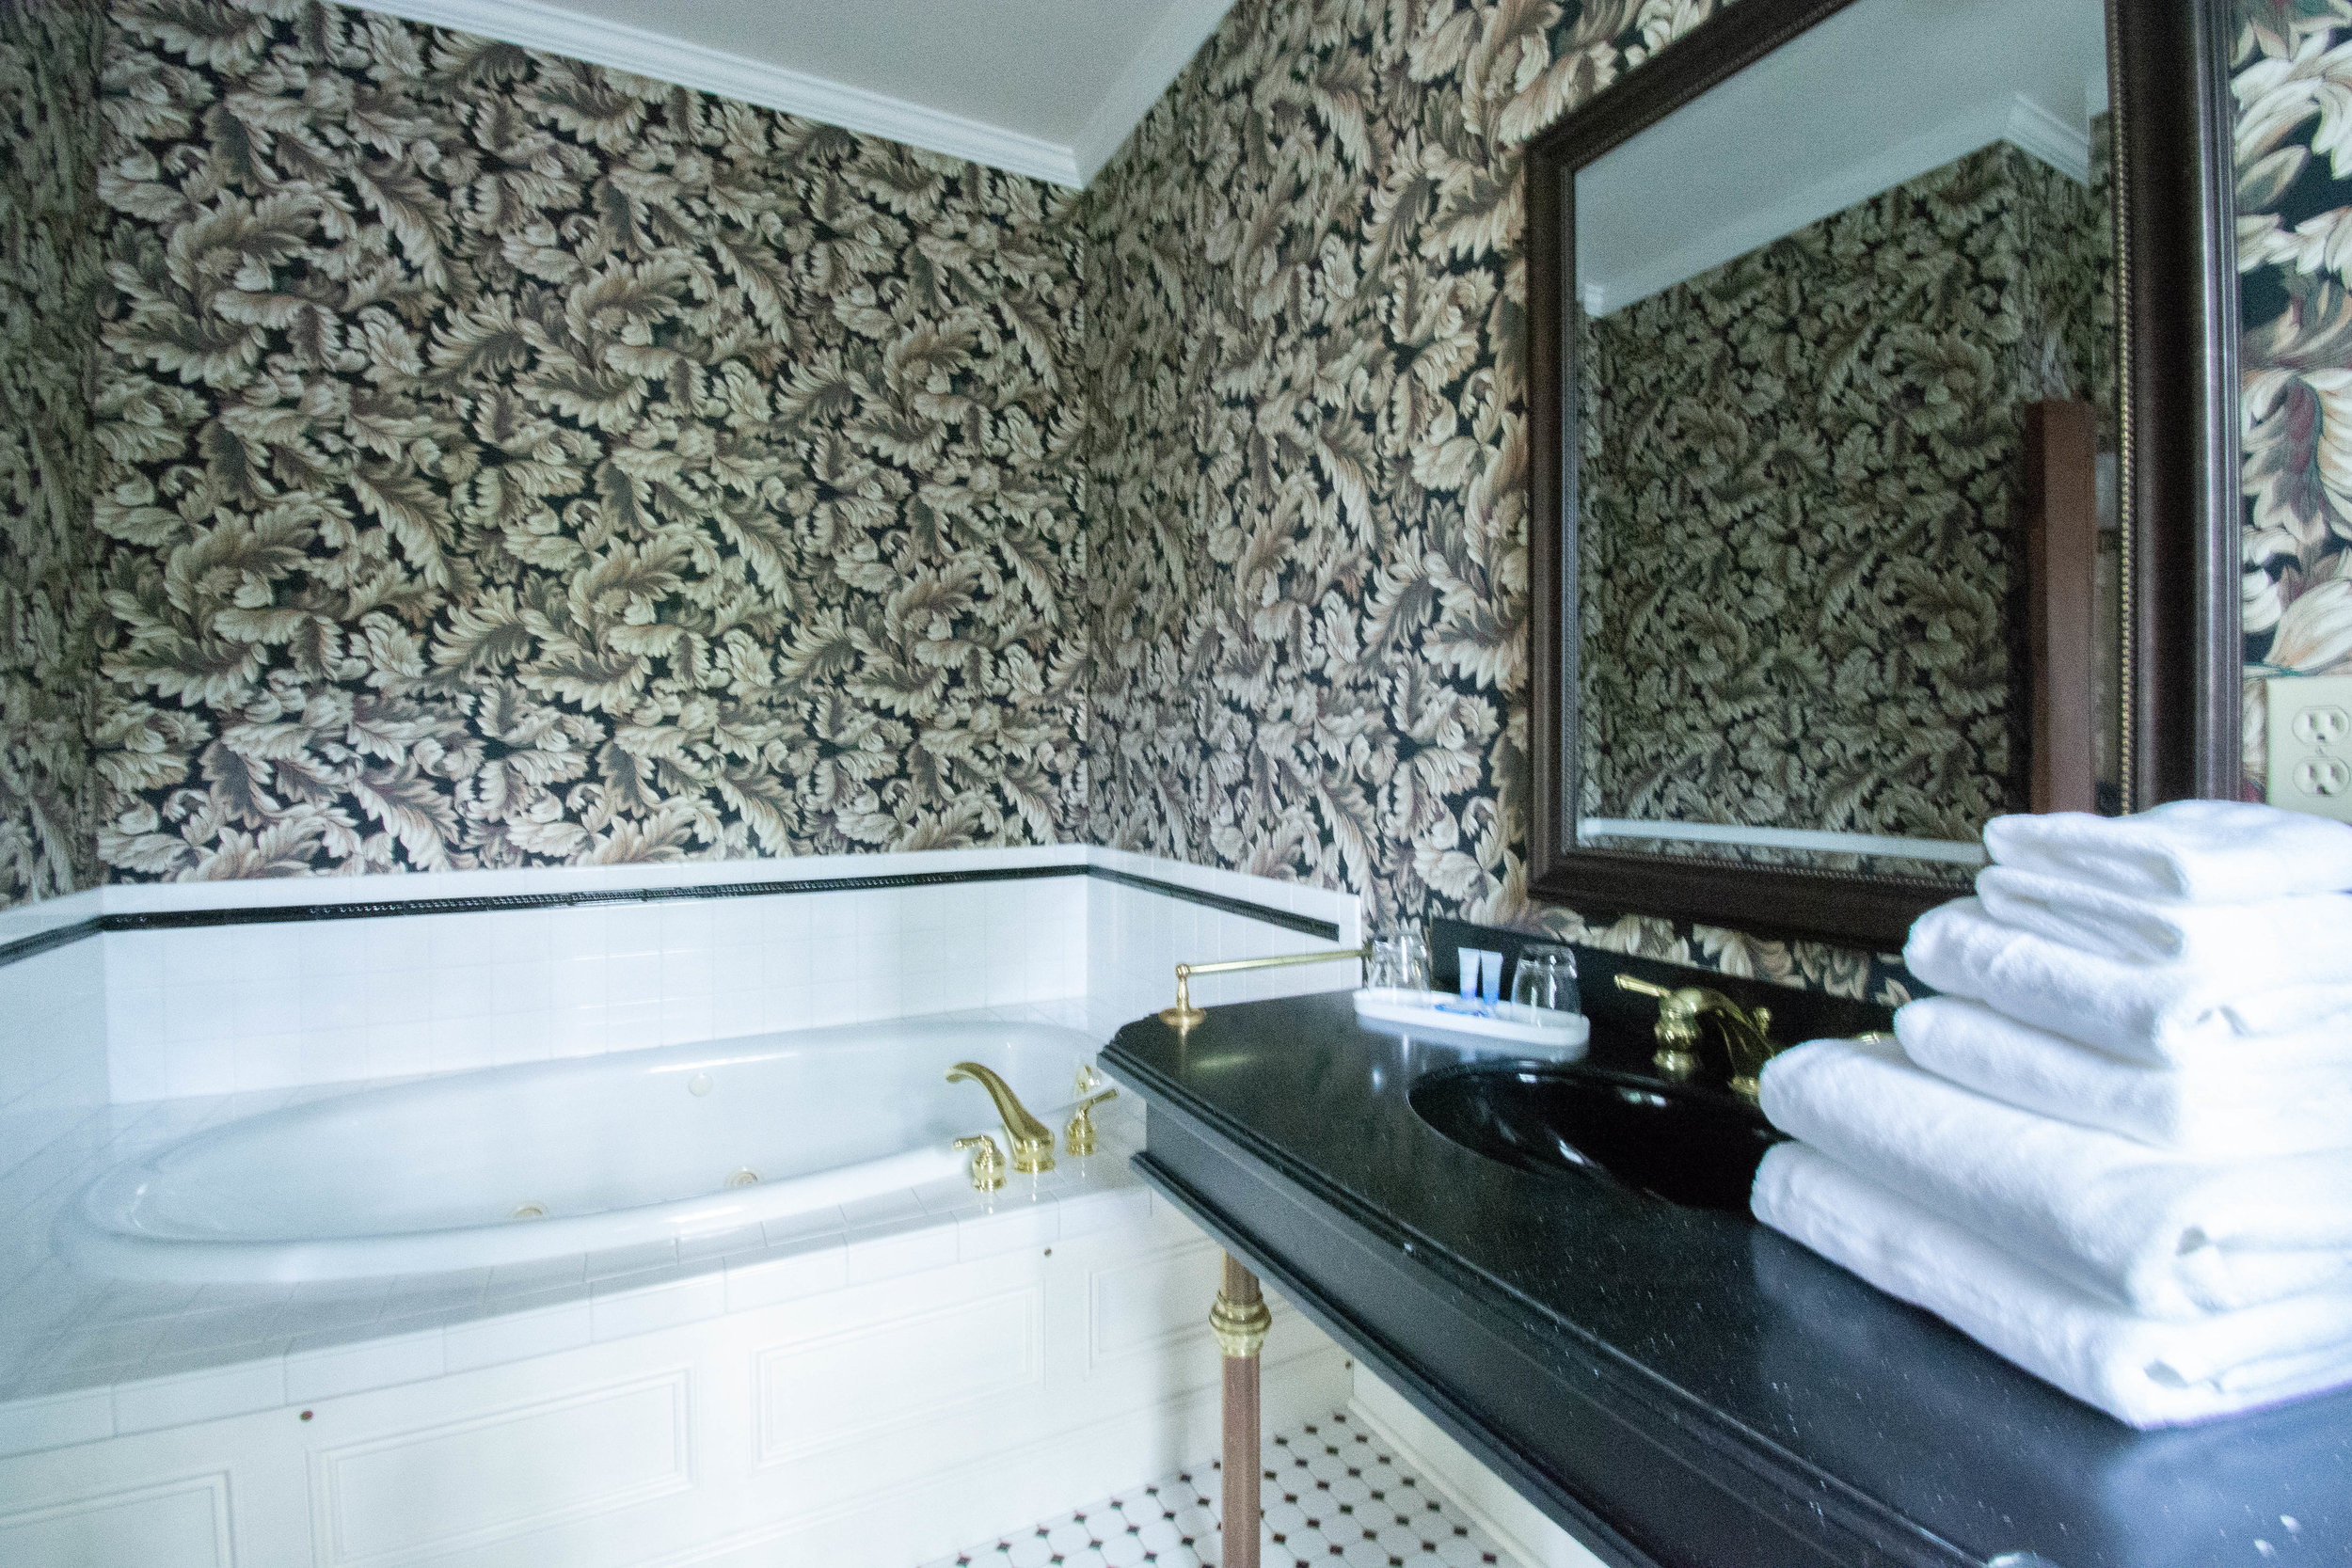 "<img alt= ""bathroom view of jetted tub and sink"" />"